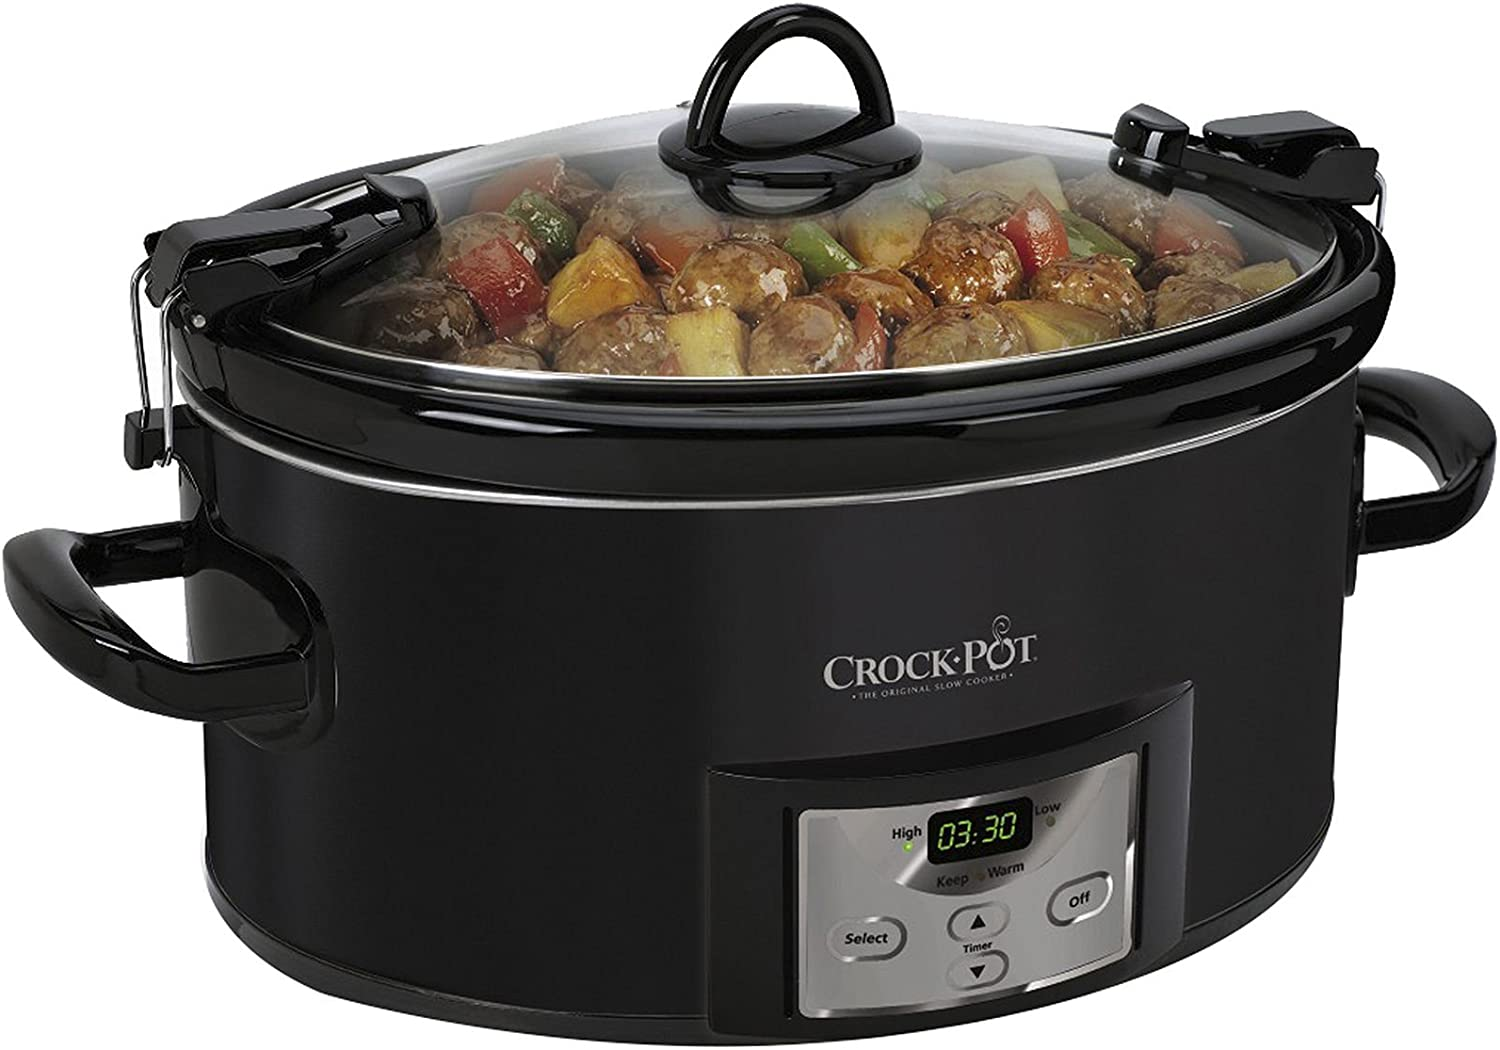 Crock-Pot 7-Qt. Cook n' Carry Programmable Countdown Slow Cooker